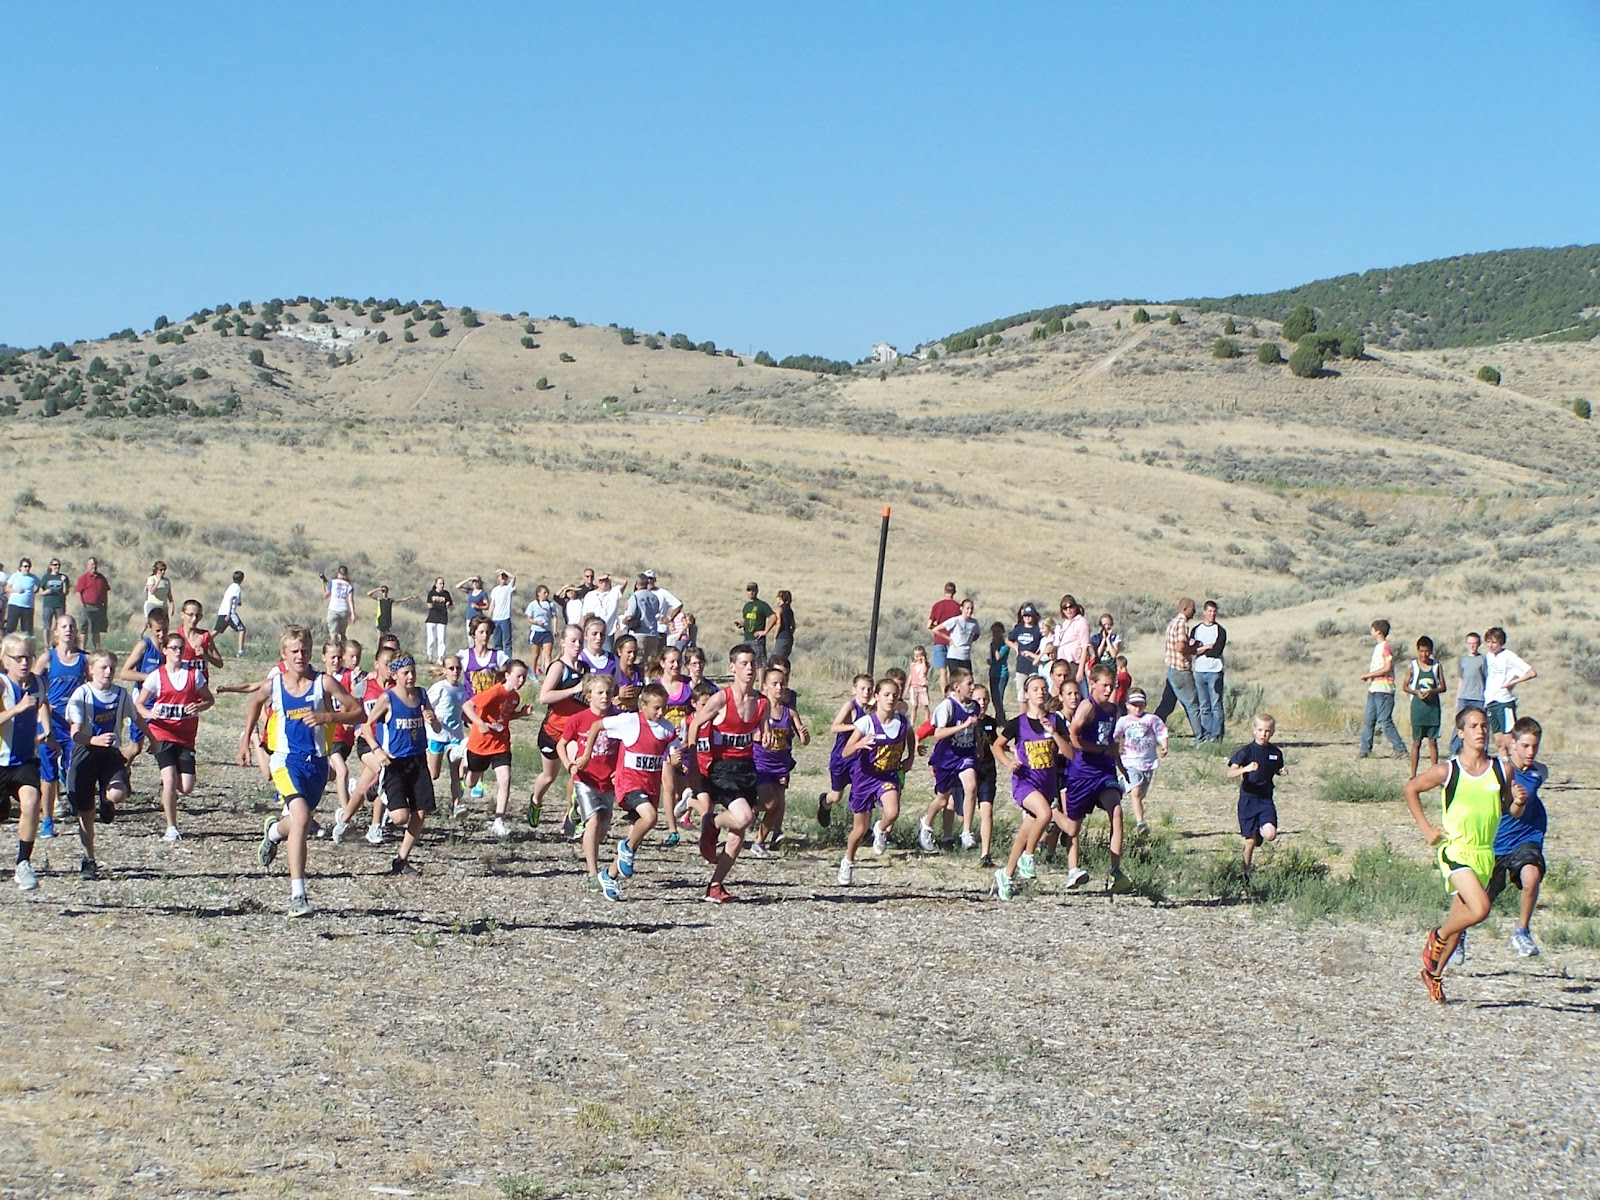 tiger grizz cross country meet 2012 olympics